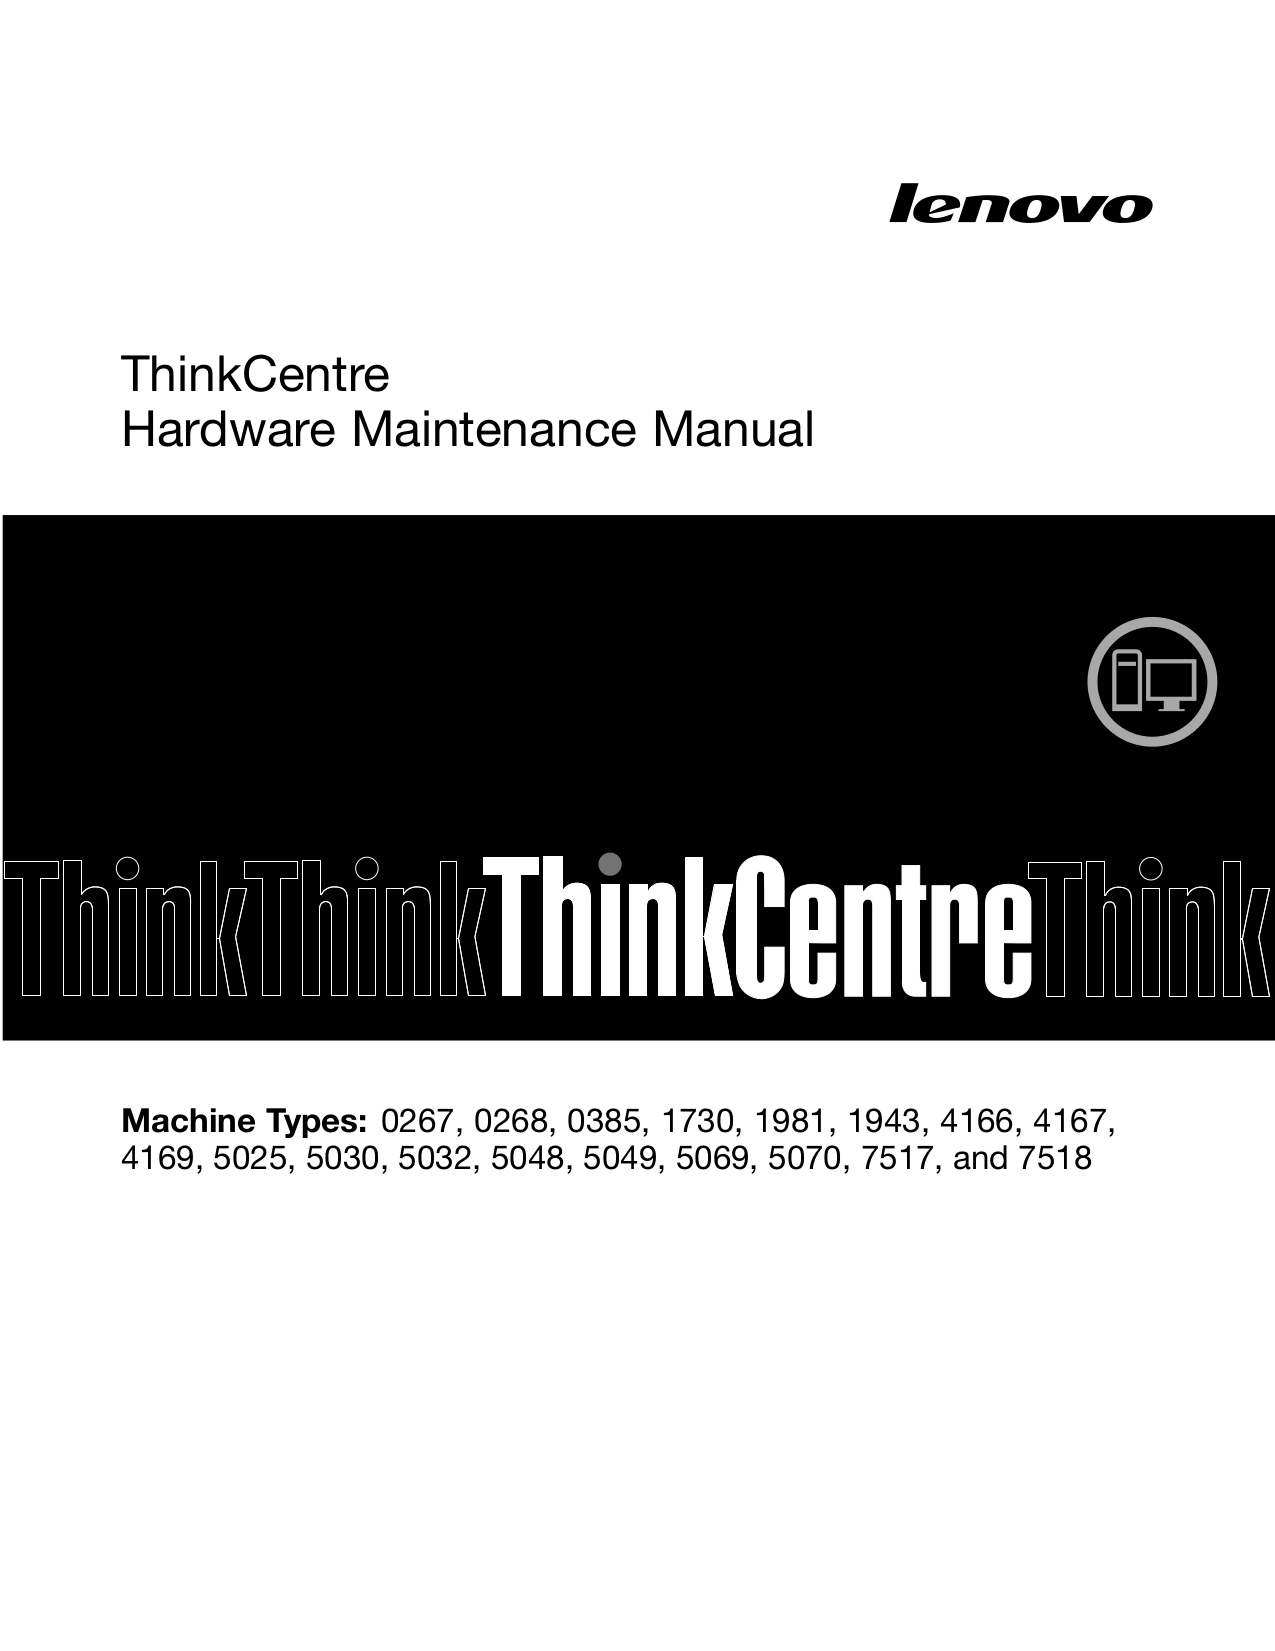 pdf for Lenovo Desktop ThinkCentre M81 7517 manual